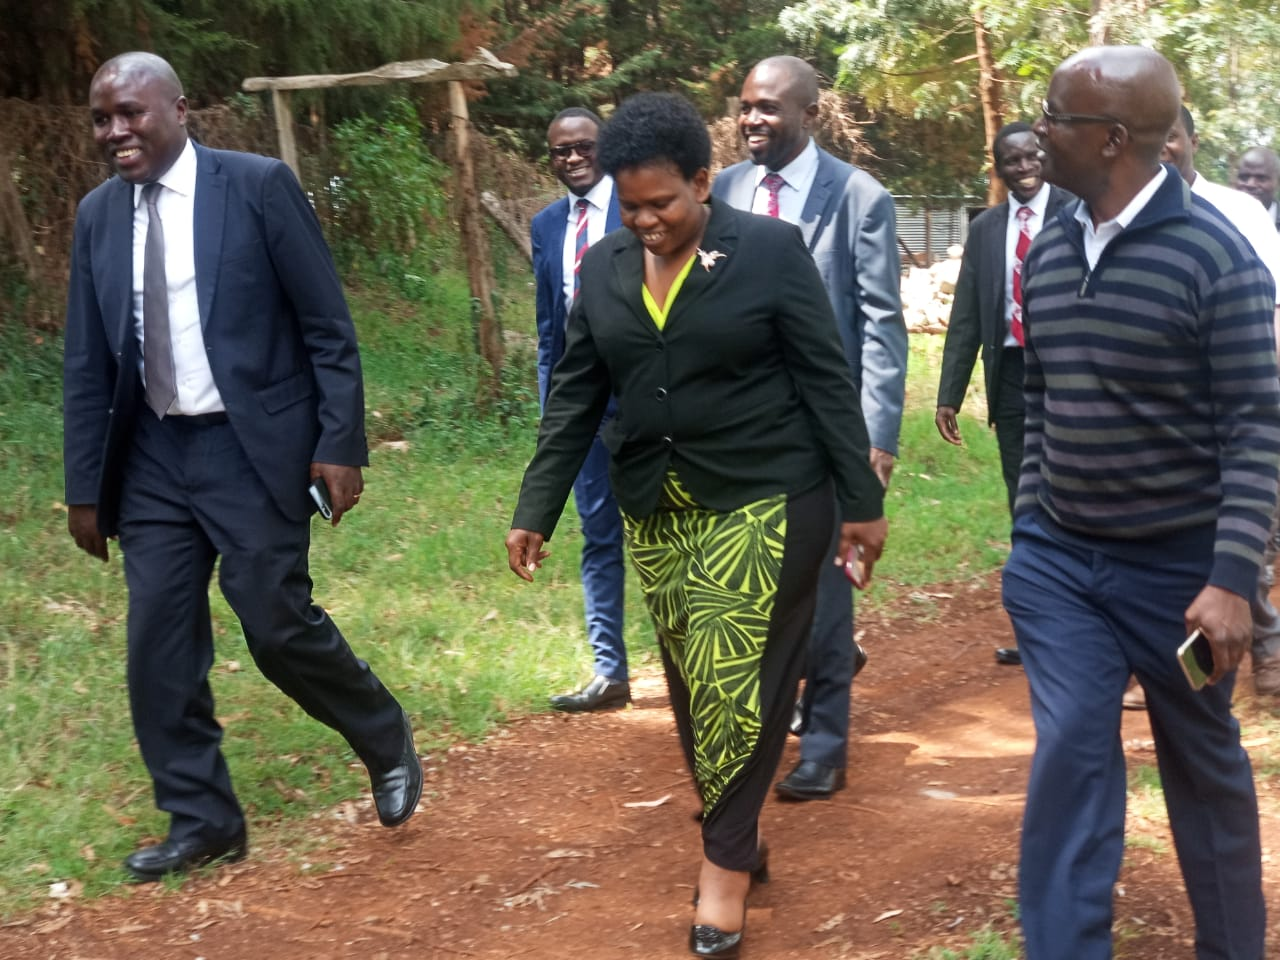 Nyagarama administration embraces PPP to help build a specialized hospital